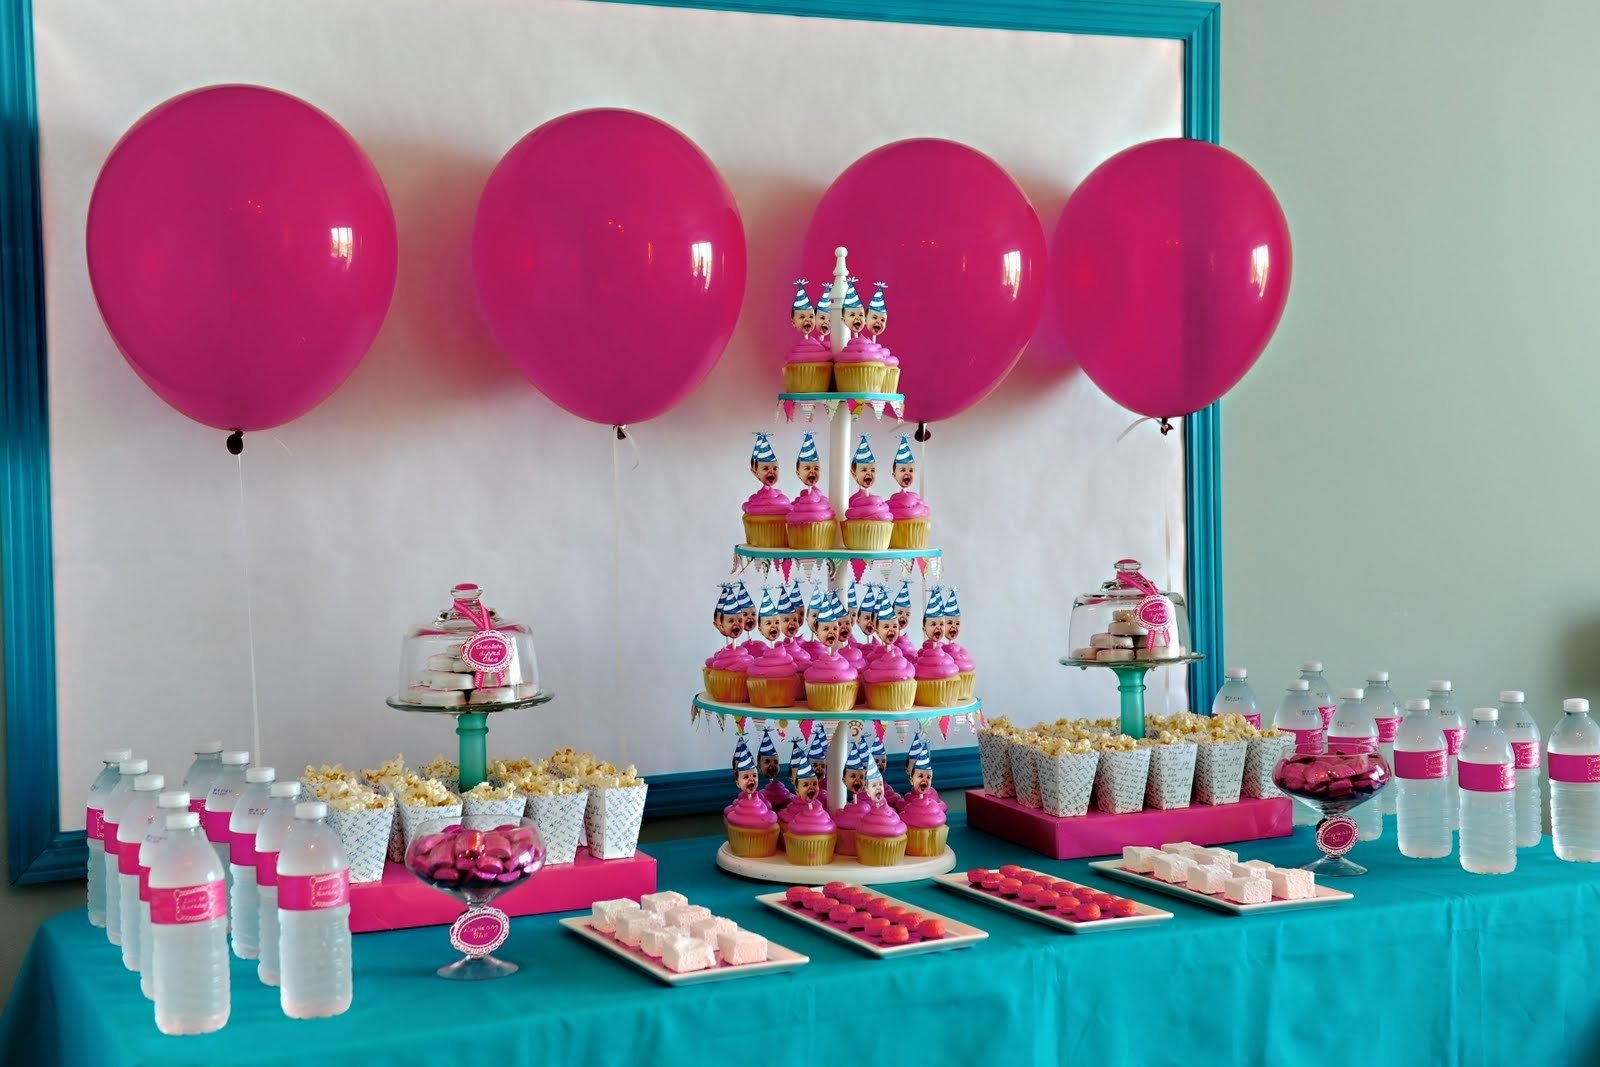 10 Great 1 Year Old Birthday Party Ideas themes birthday menu ideas for a 1 year old birthday party also 1 3 2020